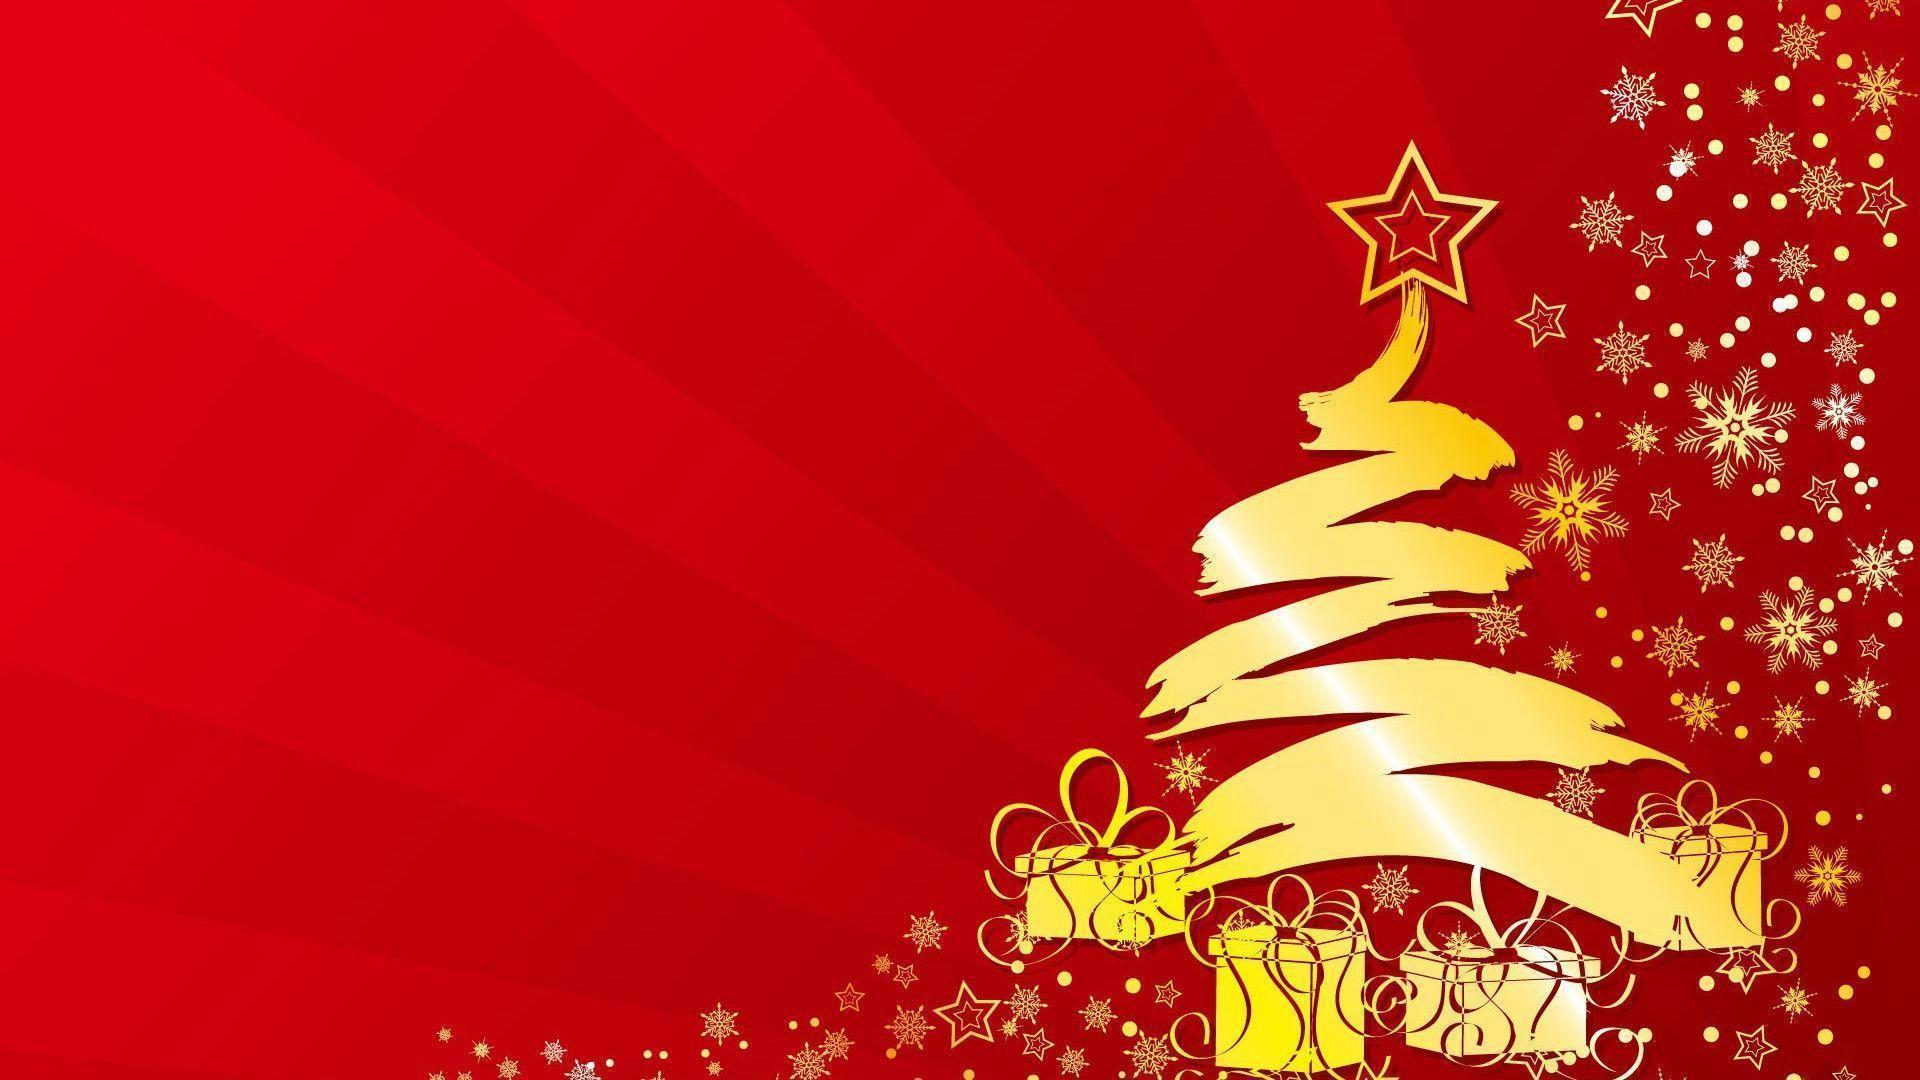 xmas backgrounds - wallpaper cave